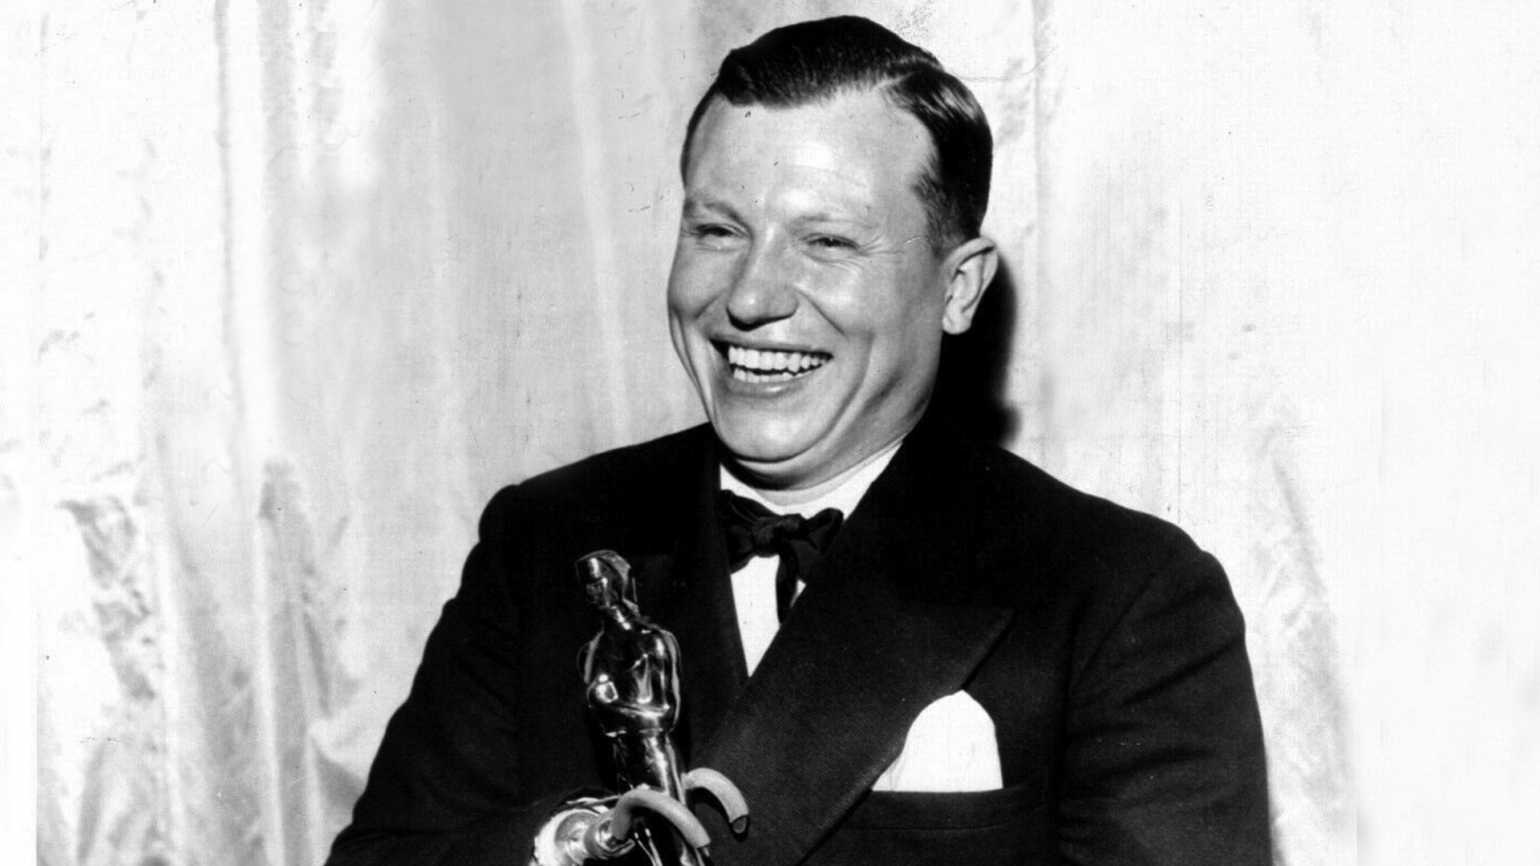 World War II veteran and Oscar winner Harold Russell